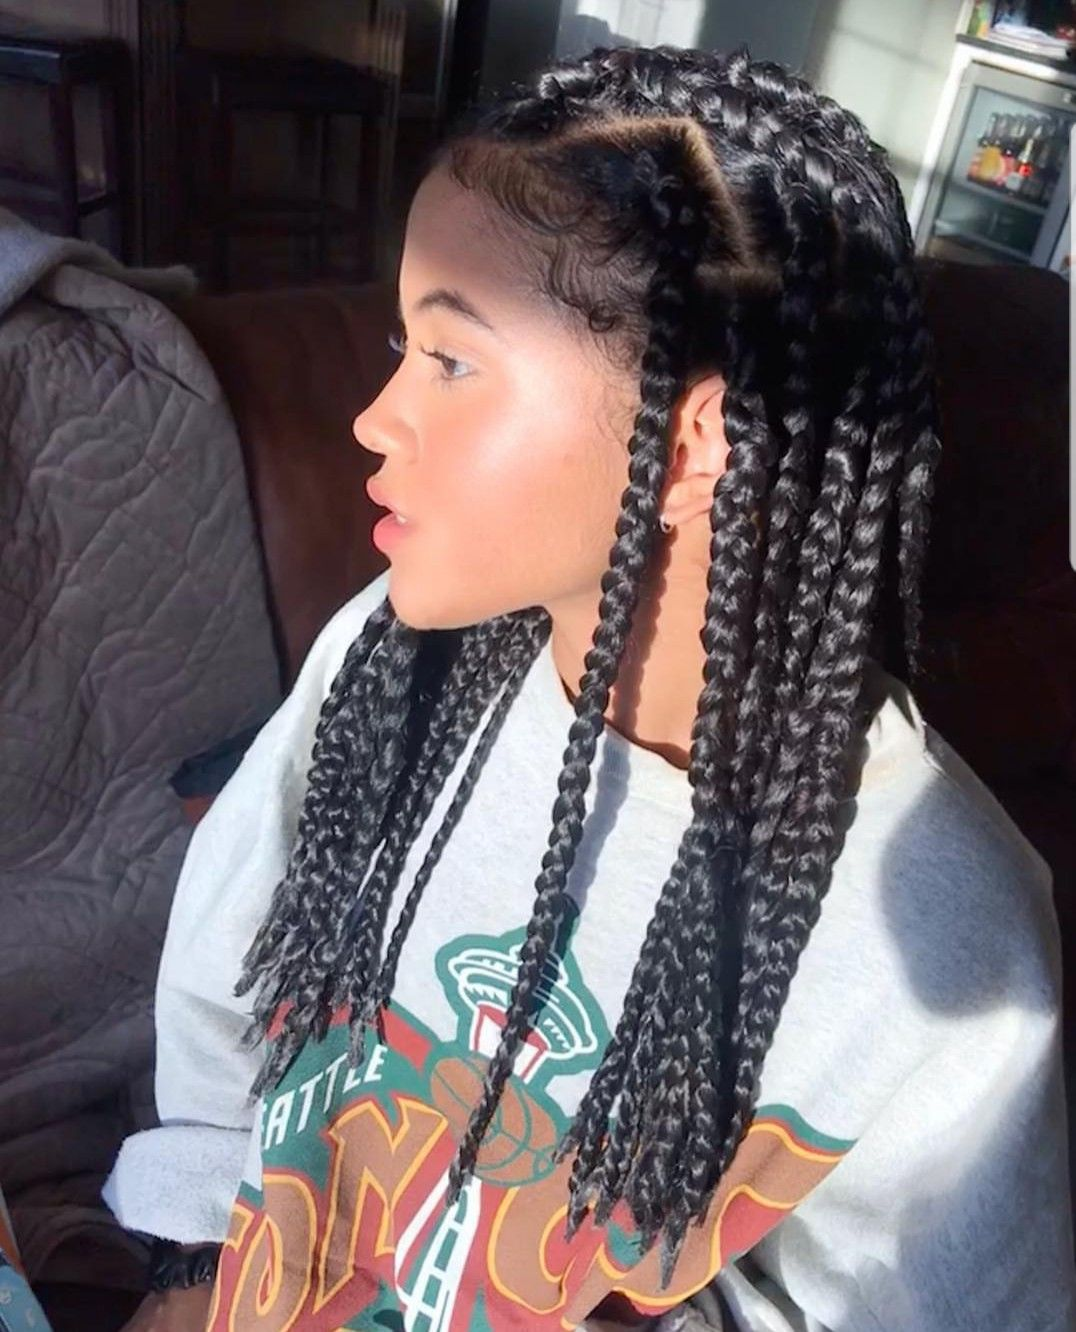 Pin By Amina Brooks On Pretty Such In 2020 Natural Hair Styles Short Box Braids Braids For Black Hair